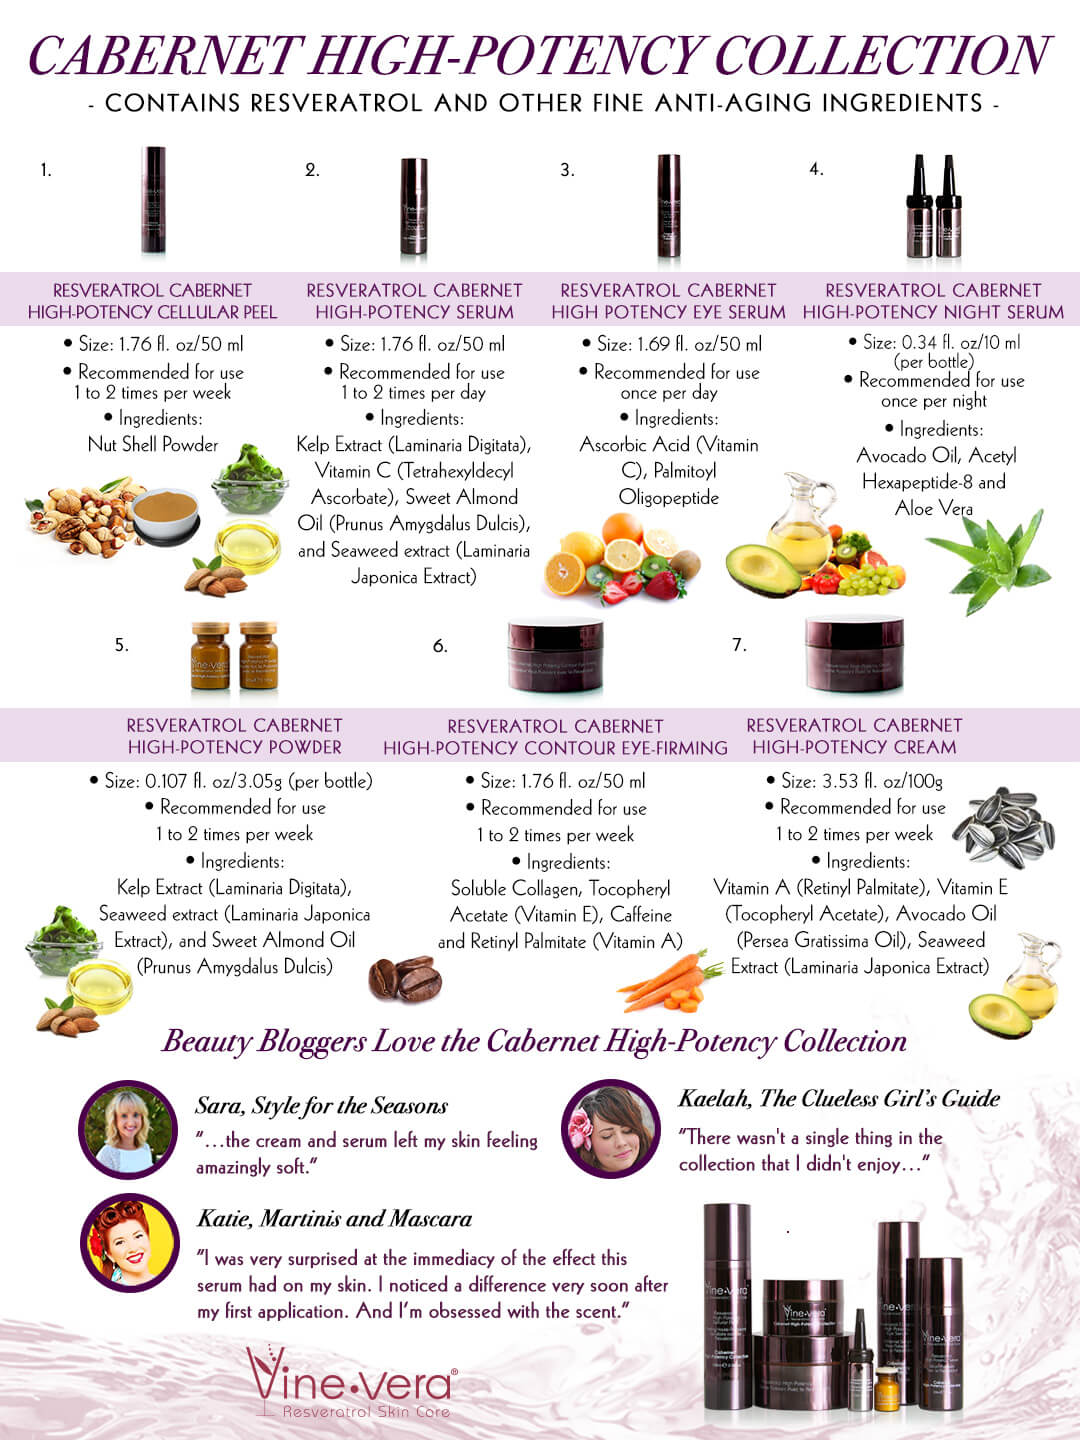 Vine Vera Cabernet High-Potency Collection infographic